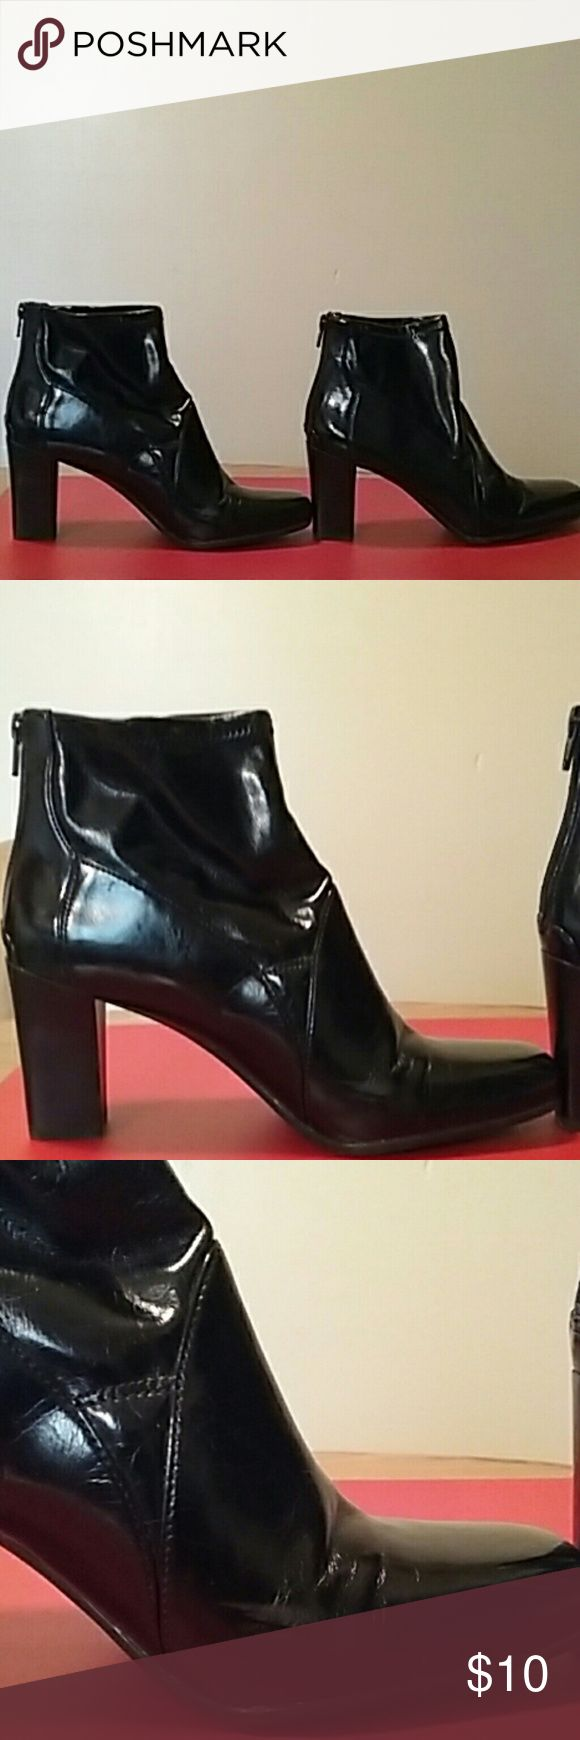 Super Cute Ankle Boots Super Cute Ankle Boots. Zipper in the Back  ...Sleek Smooth Man Made Material. ...Size 9 ....Heel 3 Inches... 2 Slight Scuff Marks as shown in Picture 3 Franco Sarto Shoes Ankle Boots & Booties